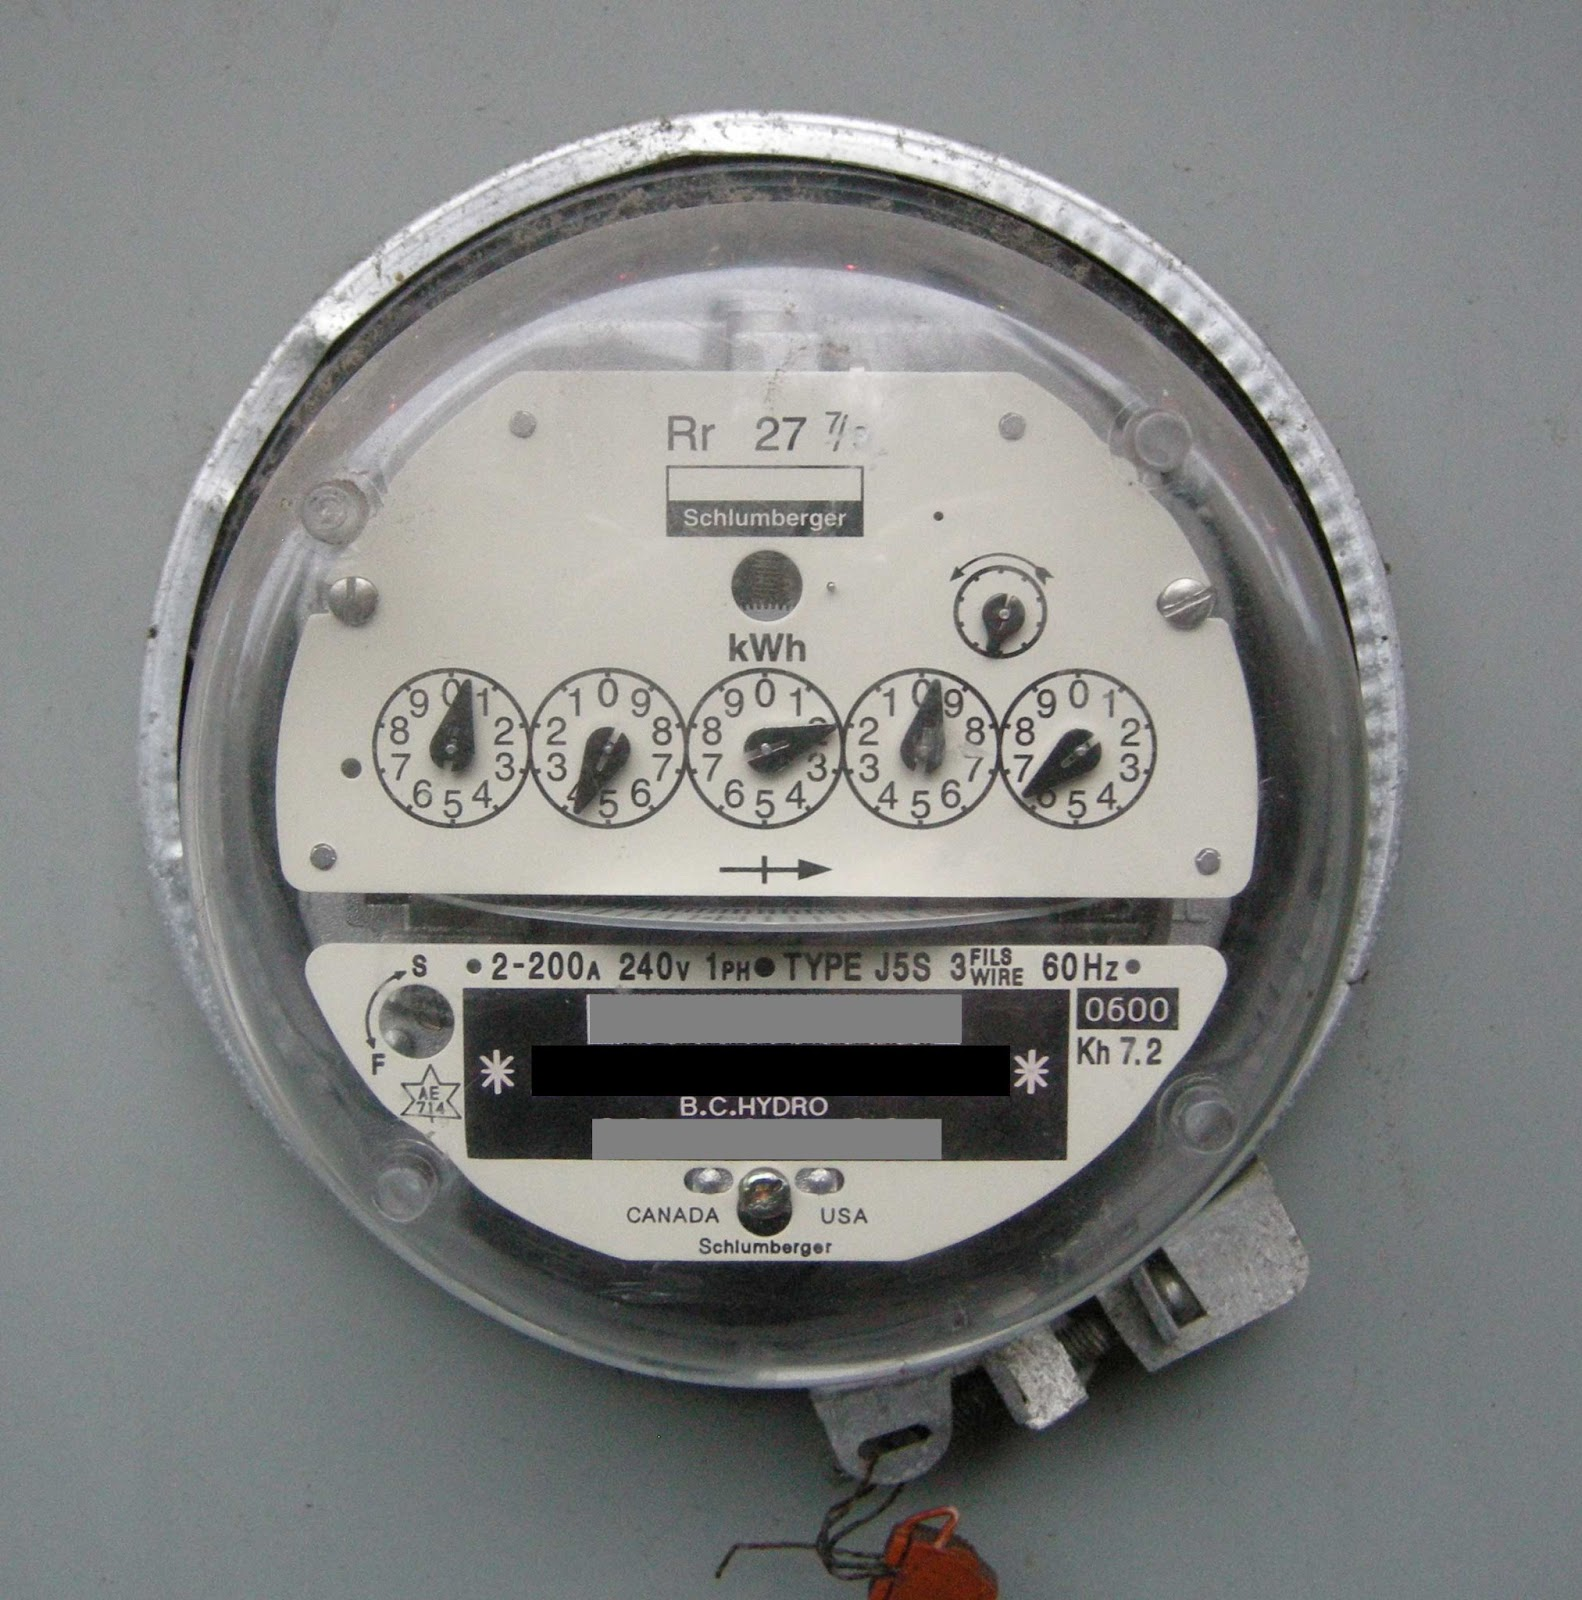 Analogue Meter Vs Smart Meters : Borg collective a bc hydro smart meter that smiles